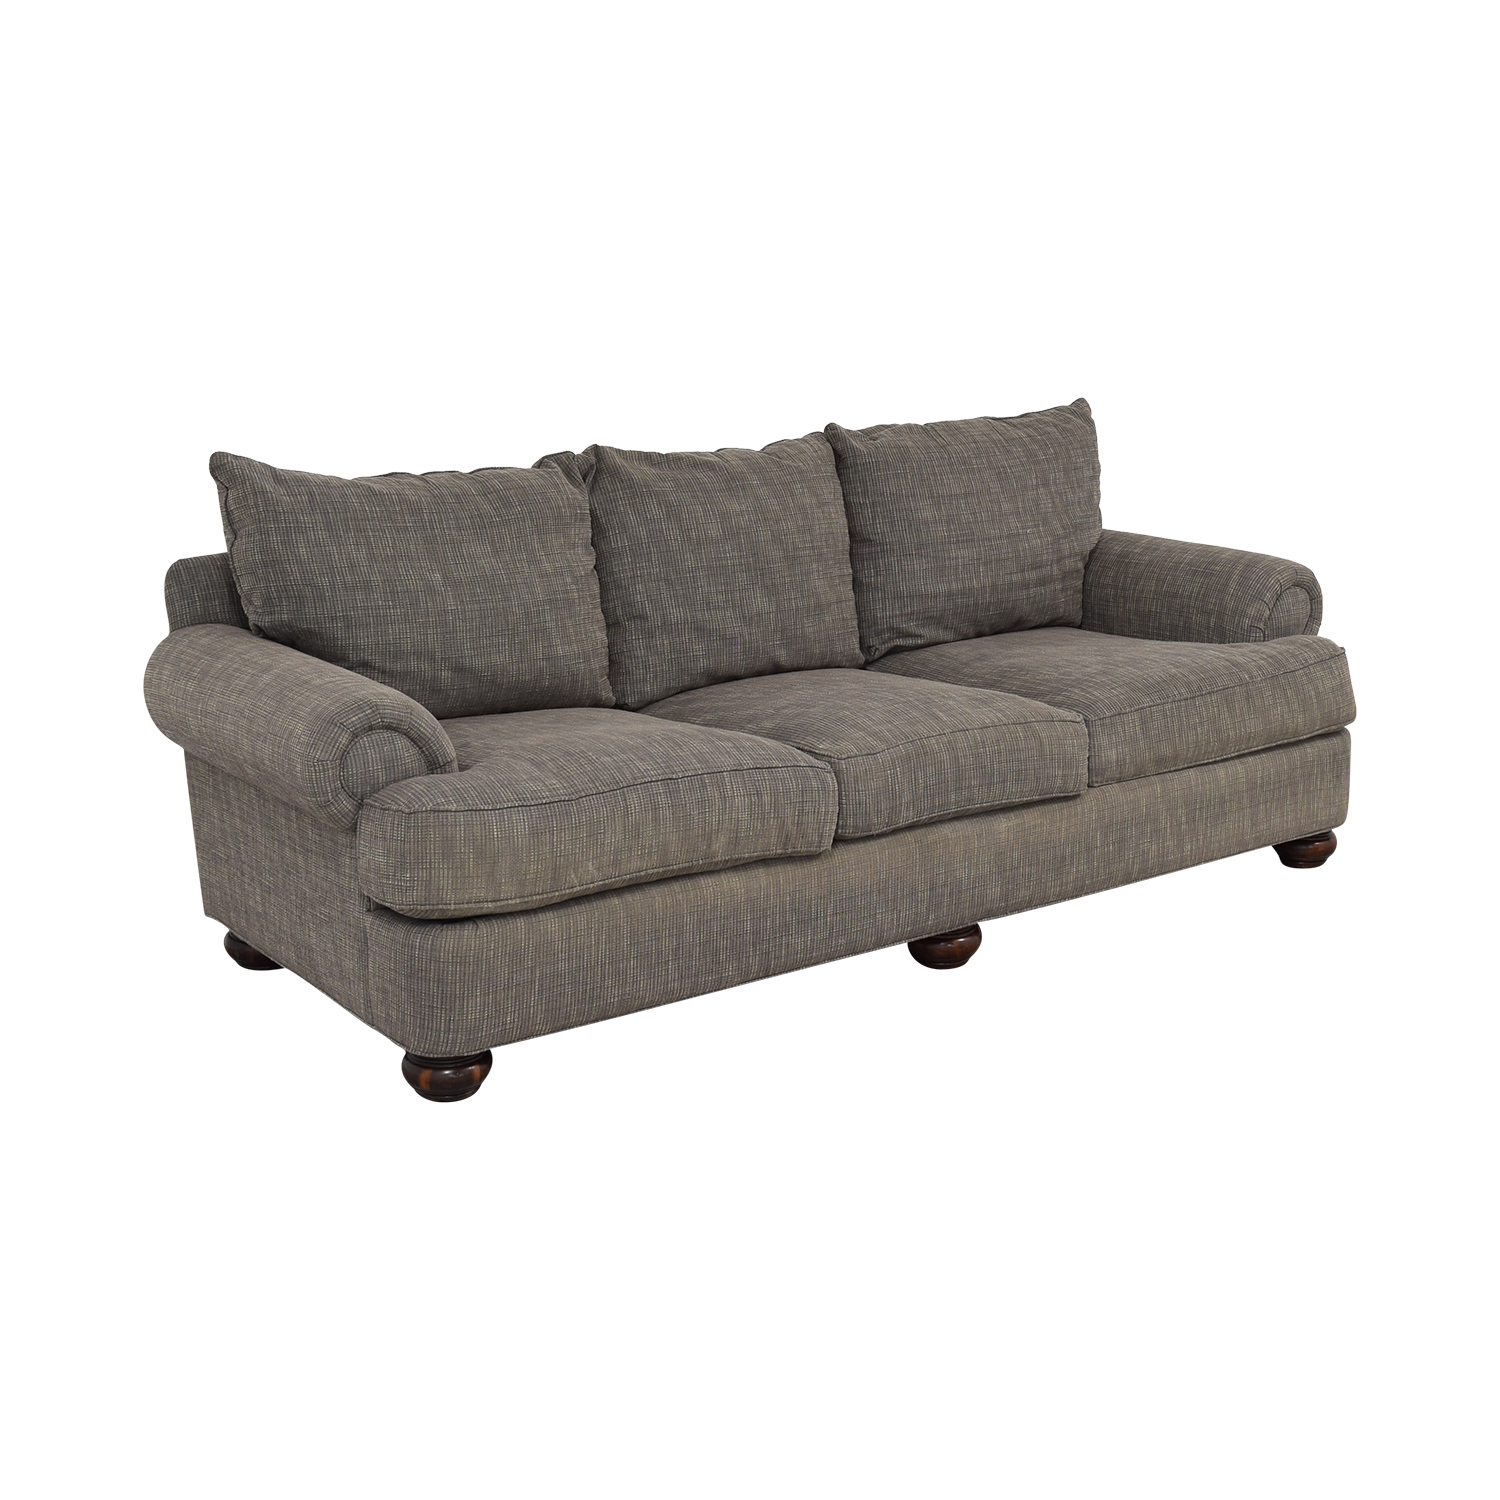 Thomasville Thomasville Oversize Three Cushion Sofa dimensions